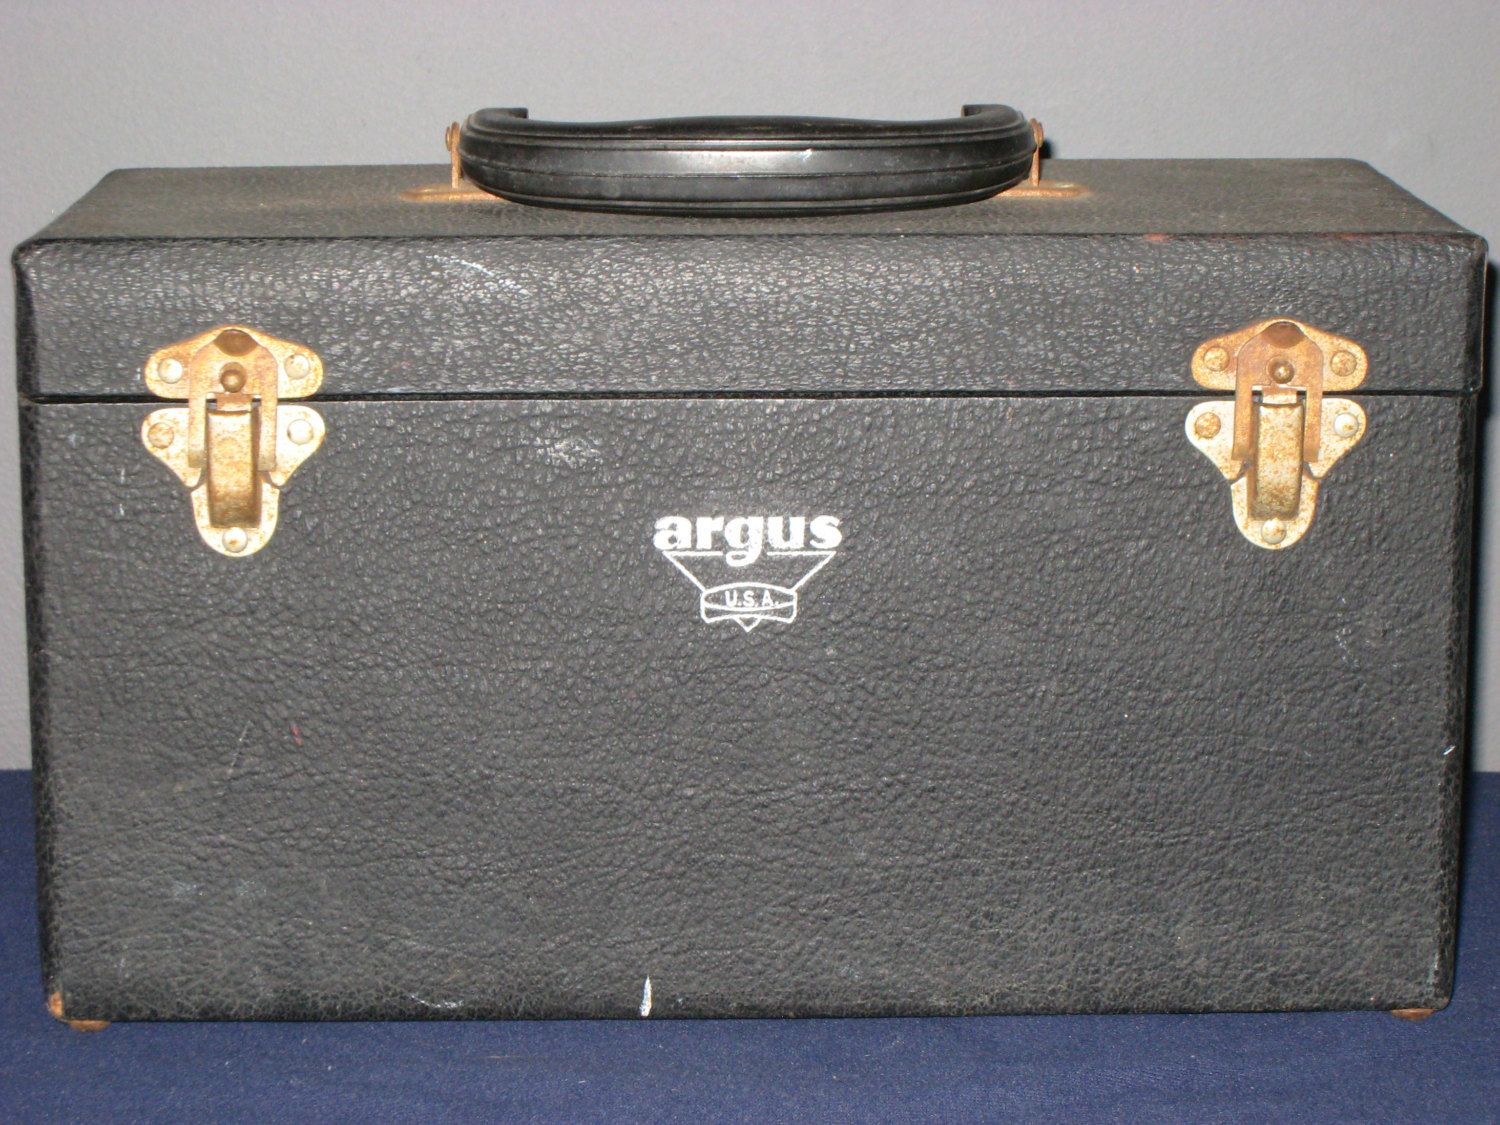 Vintage Argus USA Camera Case/Retro Camera Case/PA-100 35mm Slide Film Strip Projector CASE/Vintage Argus by iLikeEclectic on Etsy